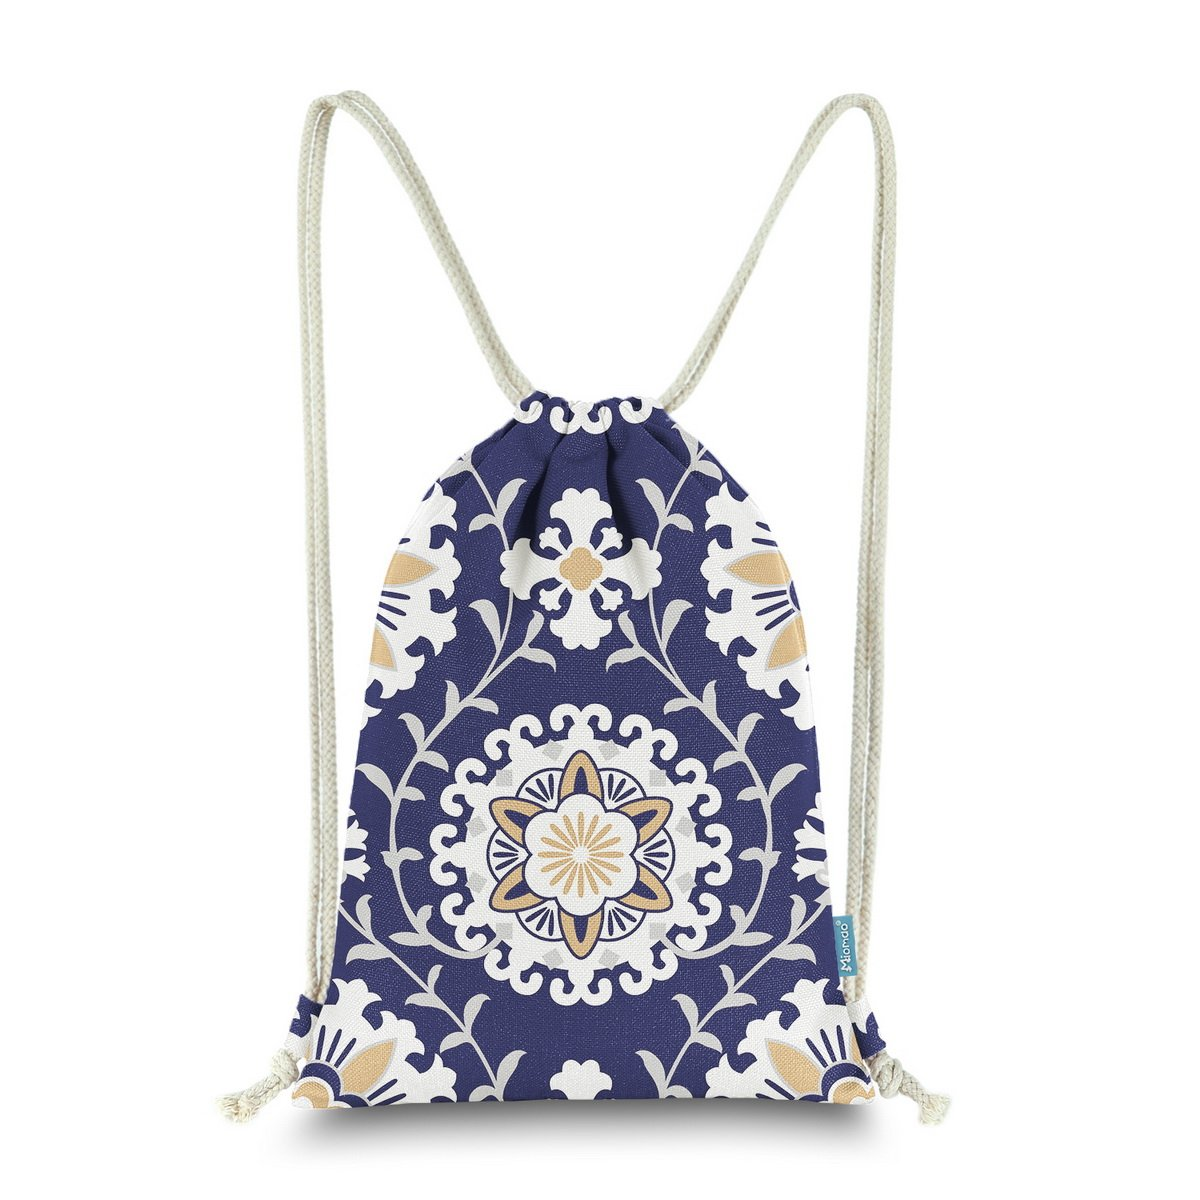 Miomao Drawstring Backpack Gym Sack Pack Dahlia Style Floral Sinch Sack Canvas String Bag Beach Cinch Pack For Men & Women 13 X 18 Inches Navy Blue